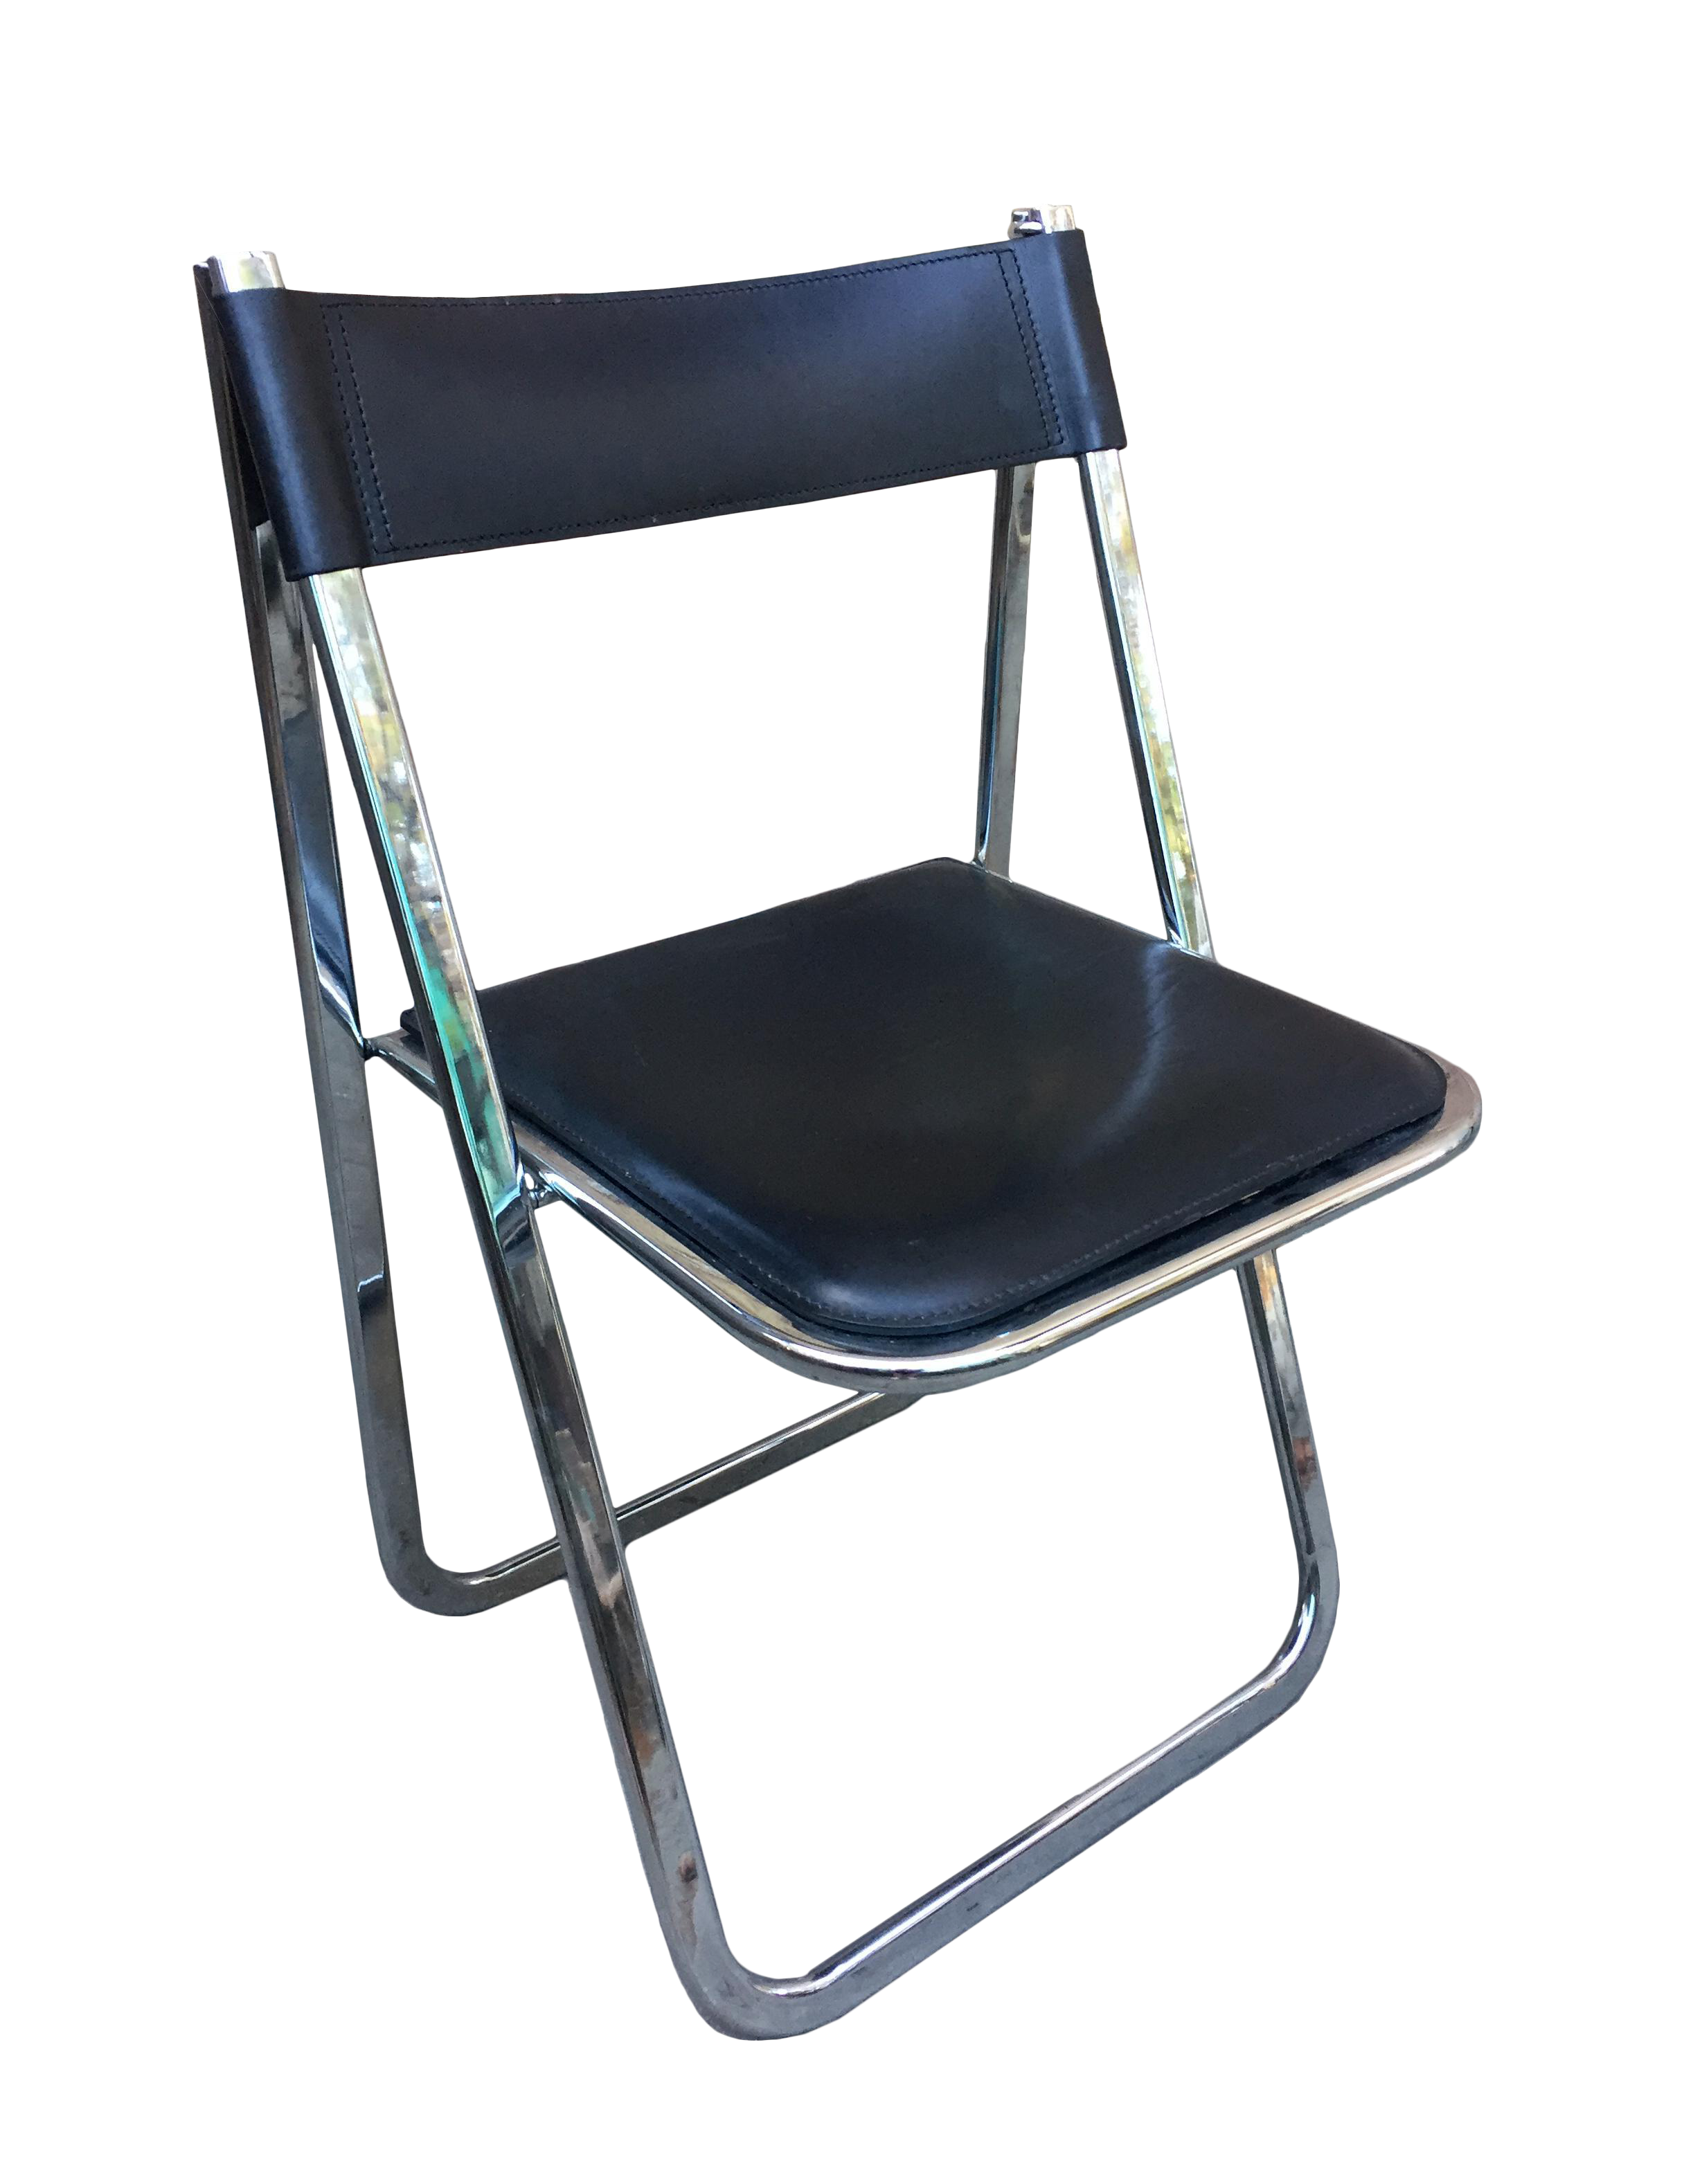 Tamara Black Leather U0026 Chrome Folding Chair By Arrben   Image 1 ...